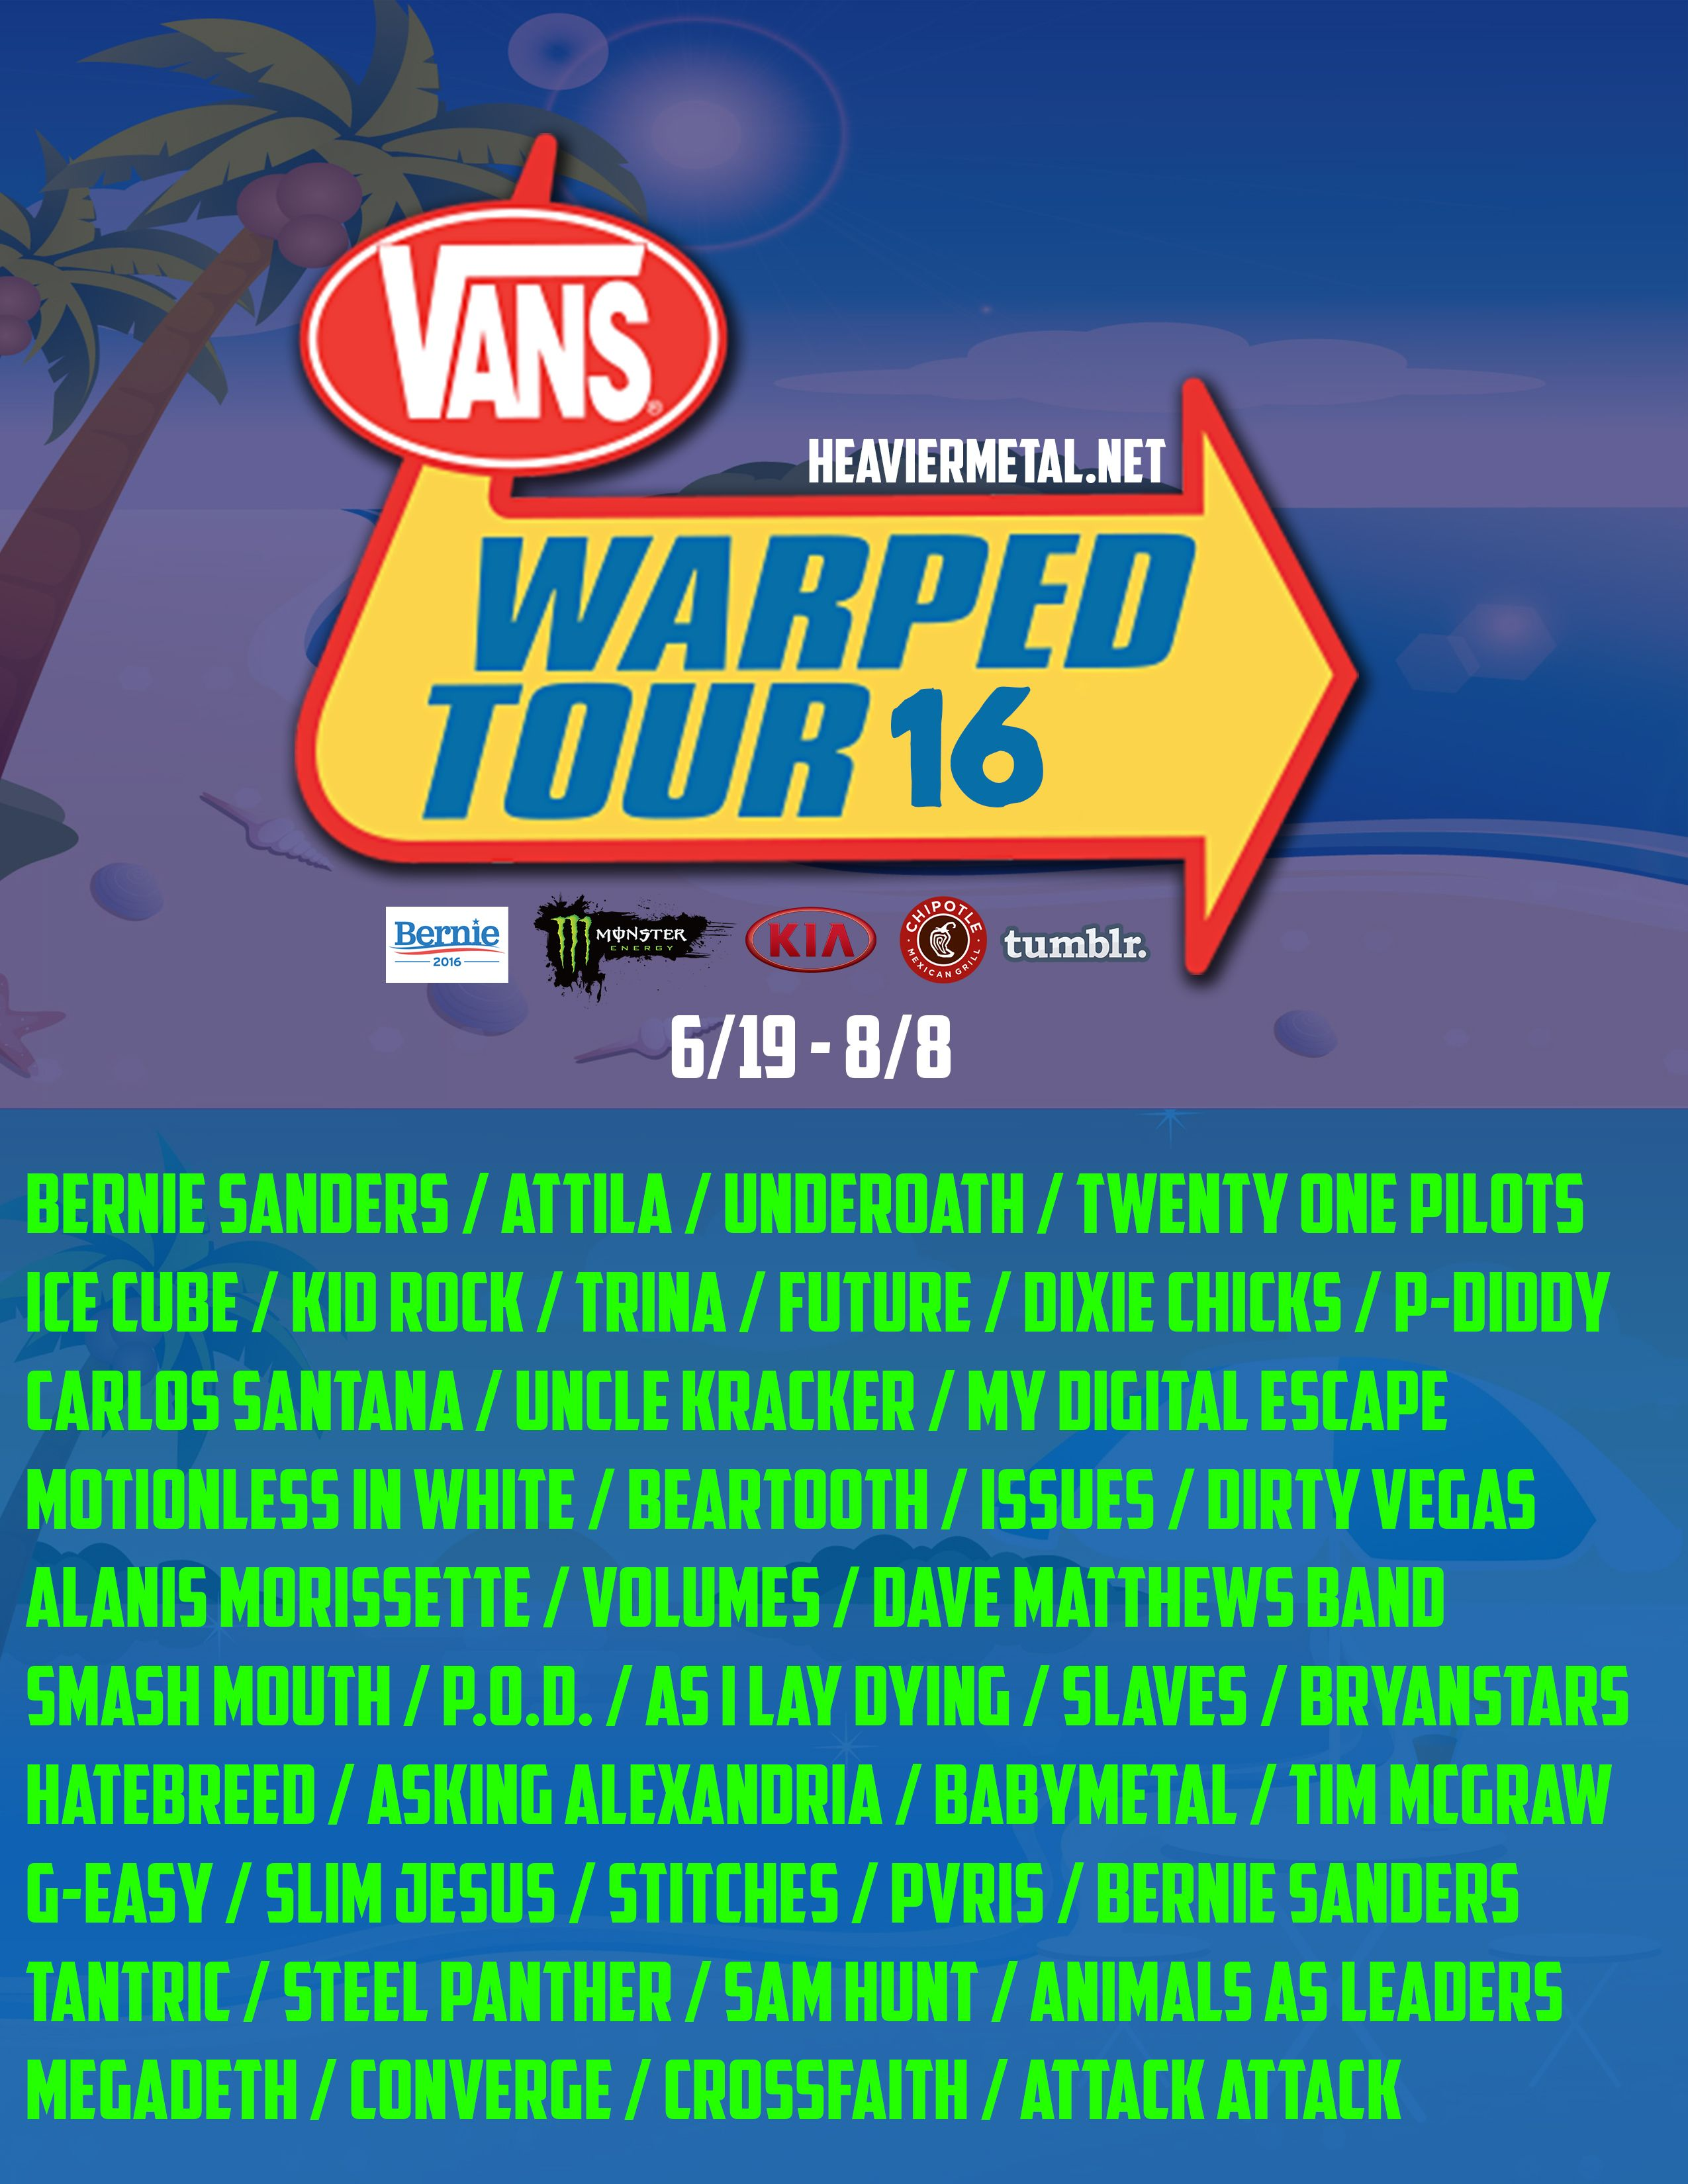 Vans Warped Tour 2016 Show Poster Band Lineup Wait Is This Real Im So Confused